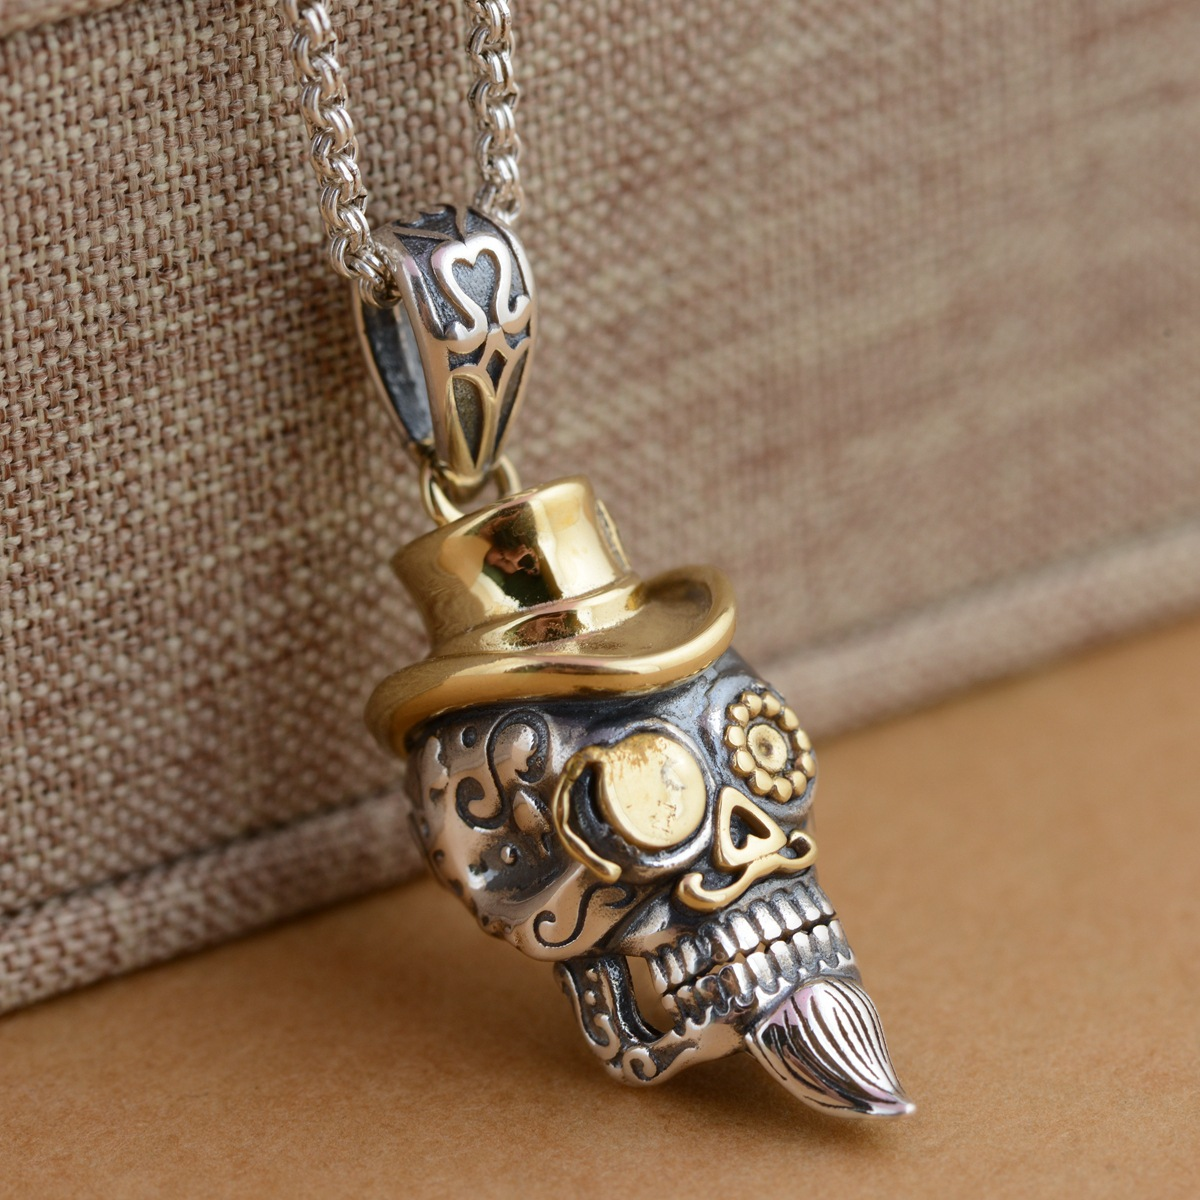 Deer King jewelry wholesale S925 Sterling Silver Pendant antique crafts skull gilded new fashion personality s925 pure silver personality female models new beeswax